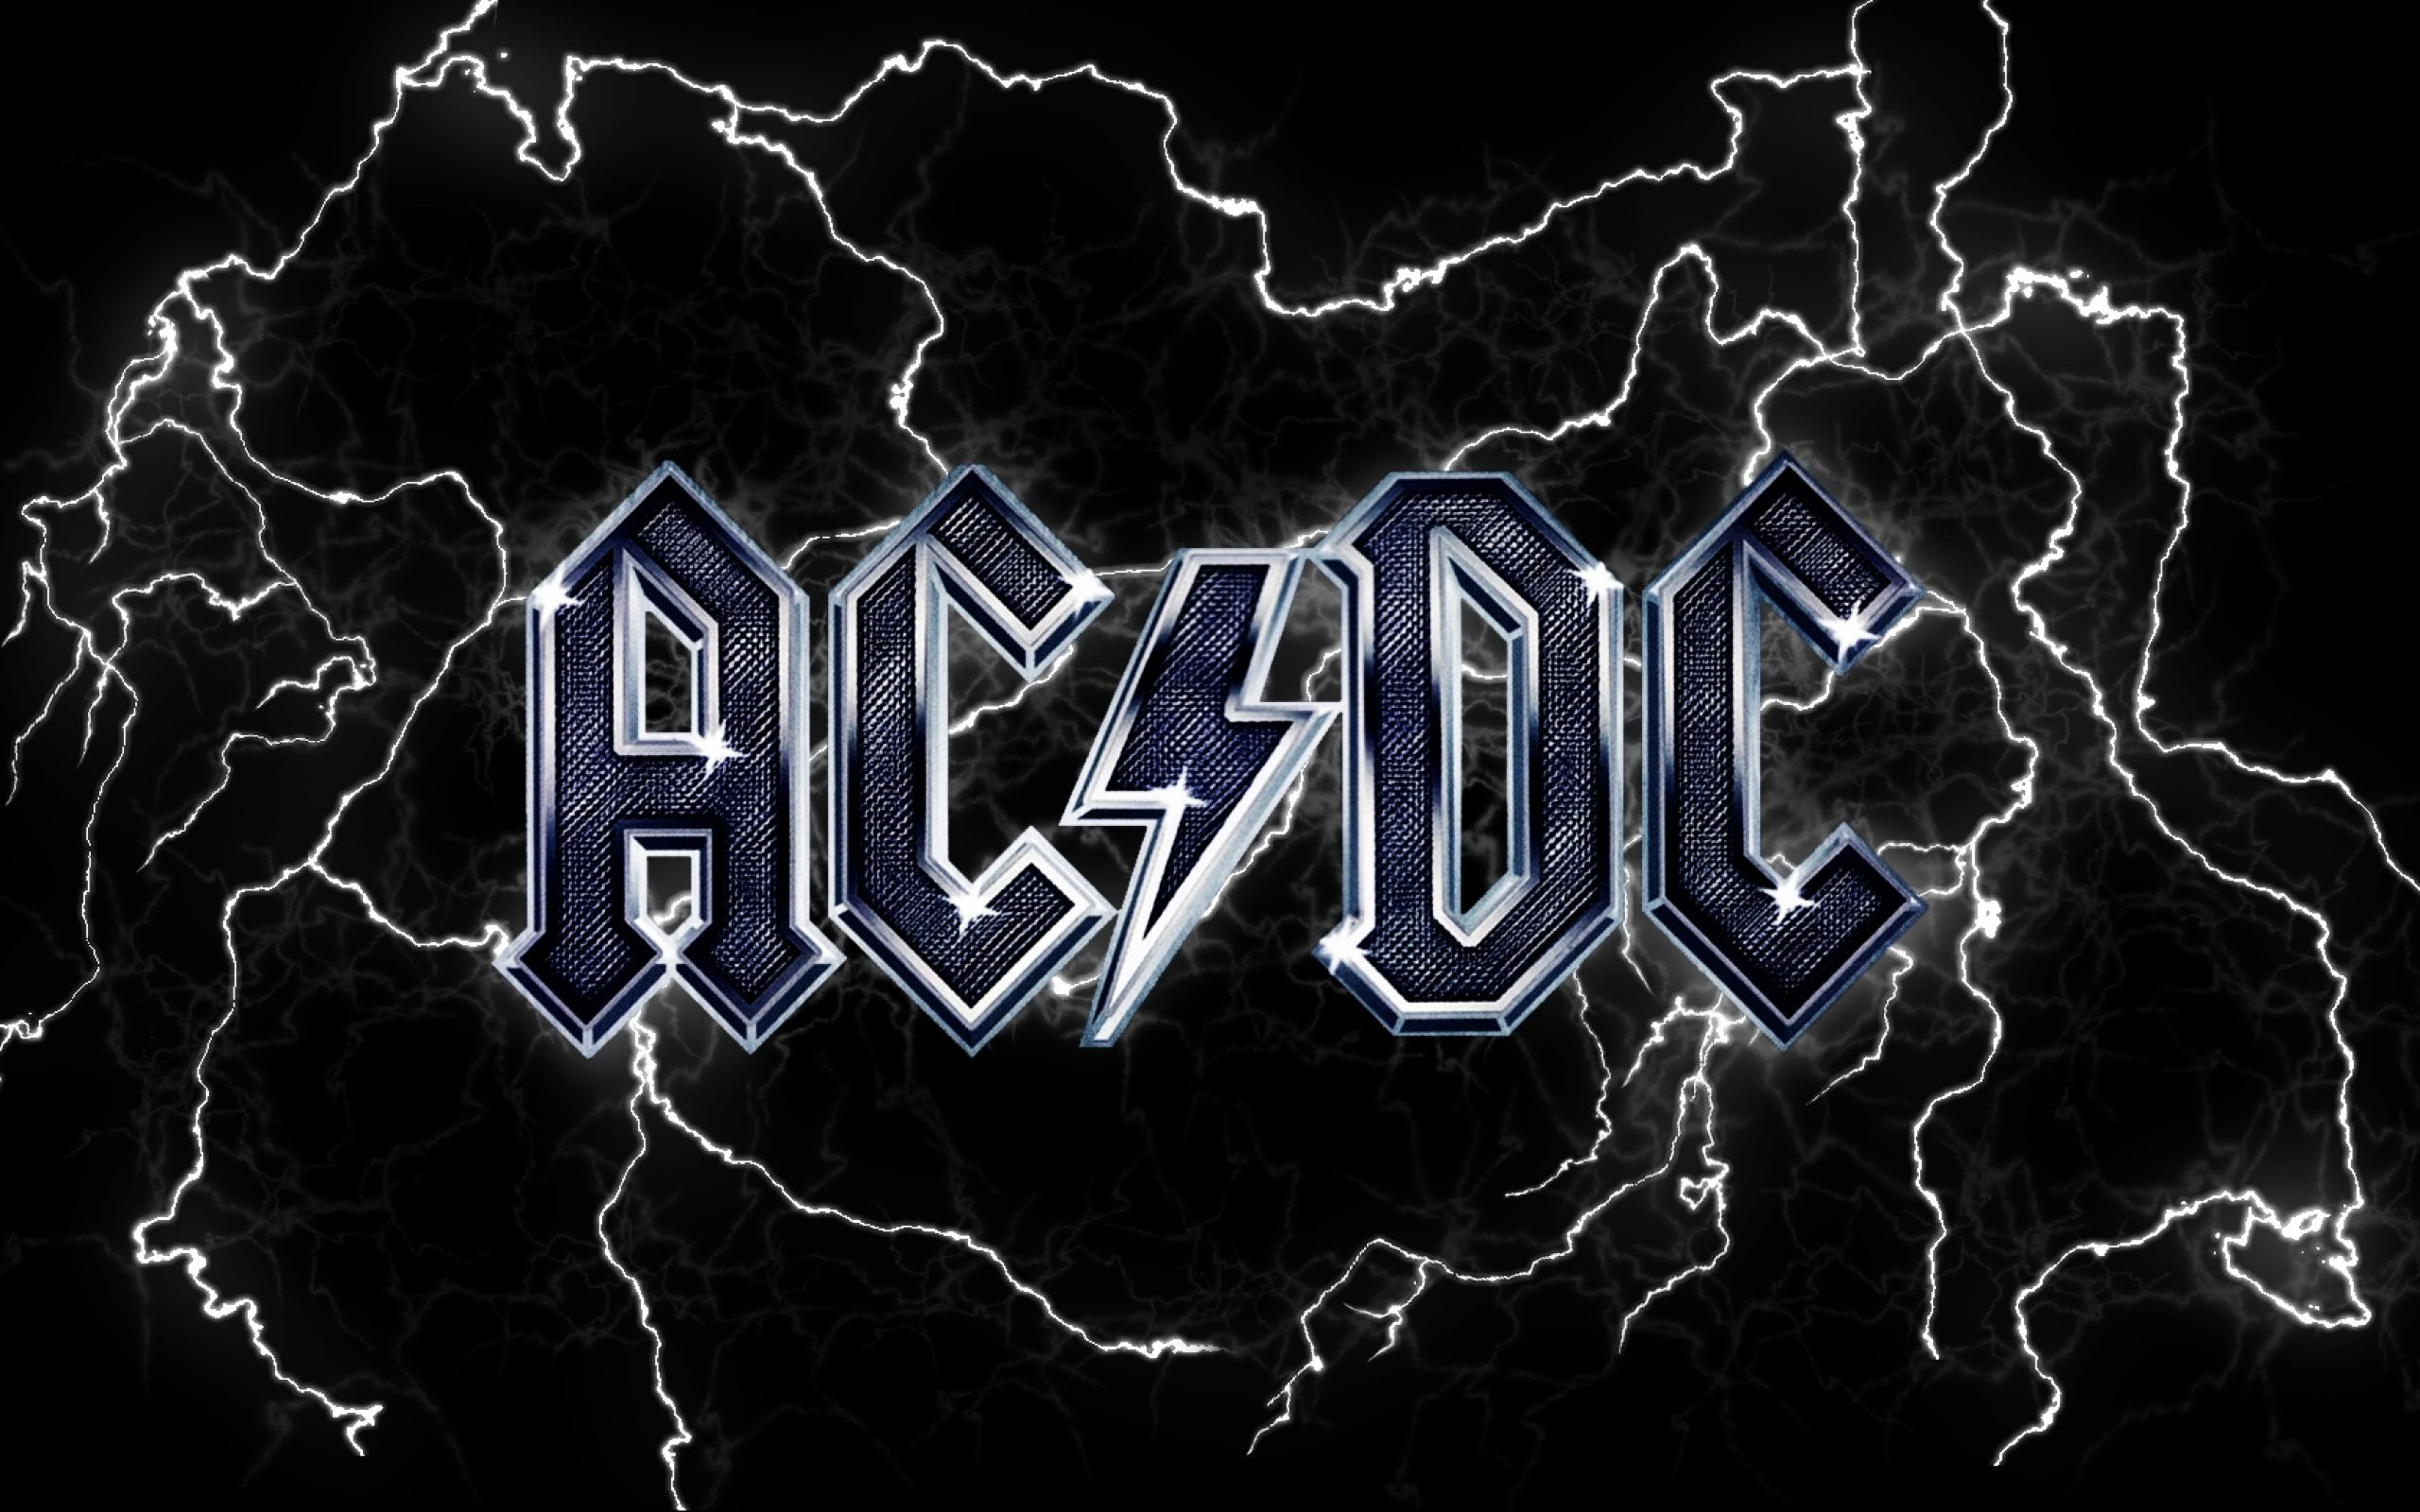 ACDC wallpaper ACDC wallpapers 2560x1600